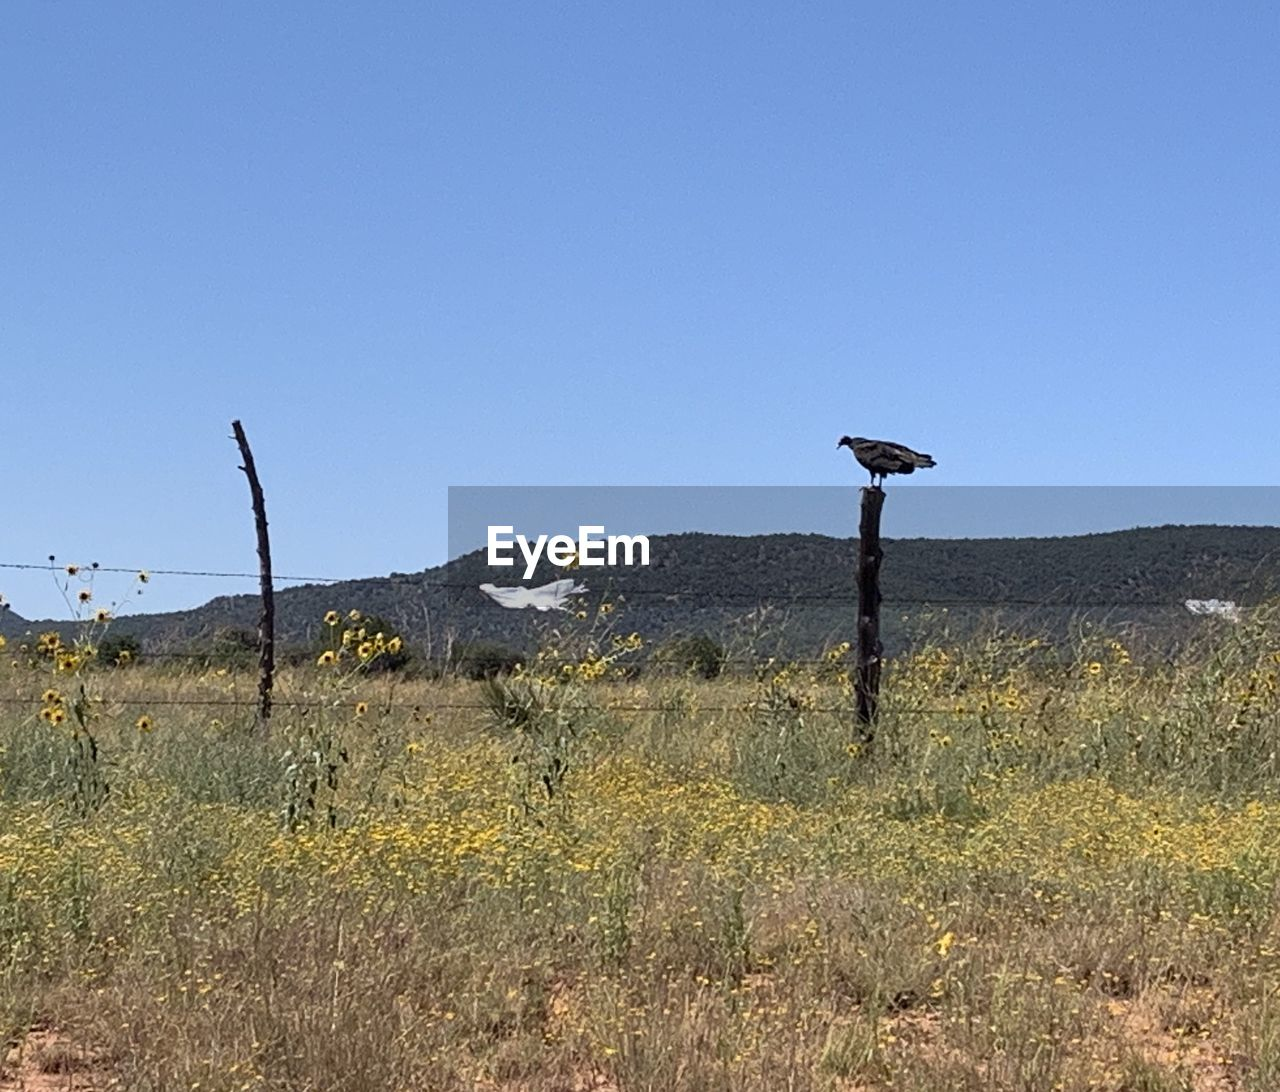 WOODEN POSTS ON FIELD AGAINST CLEAR SKY